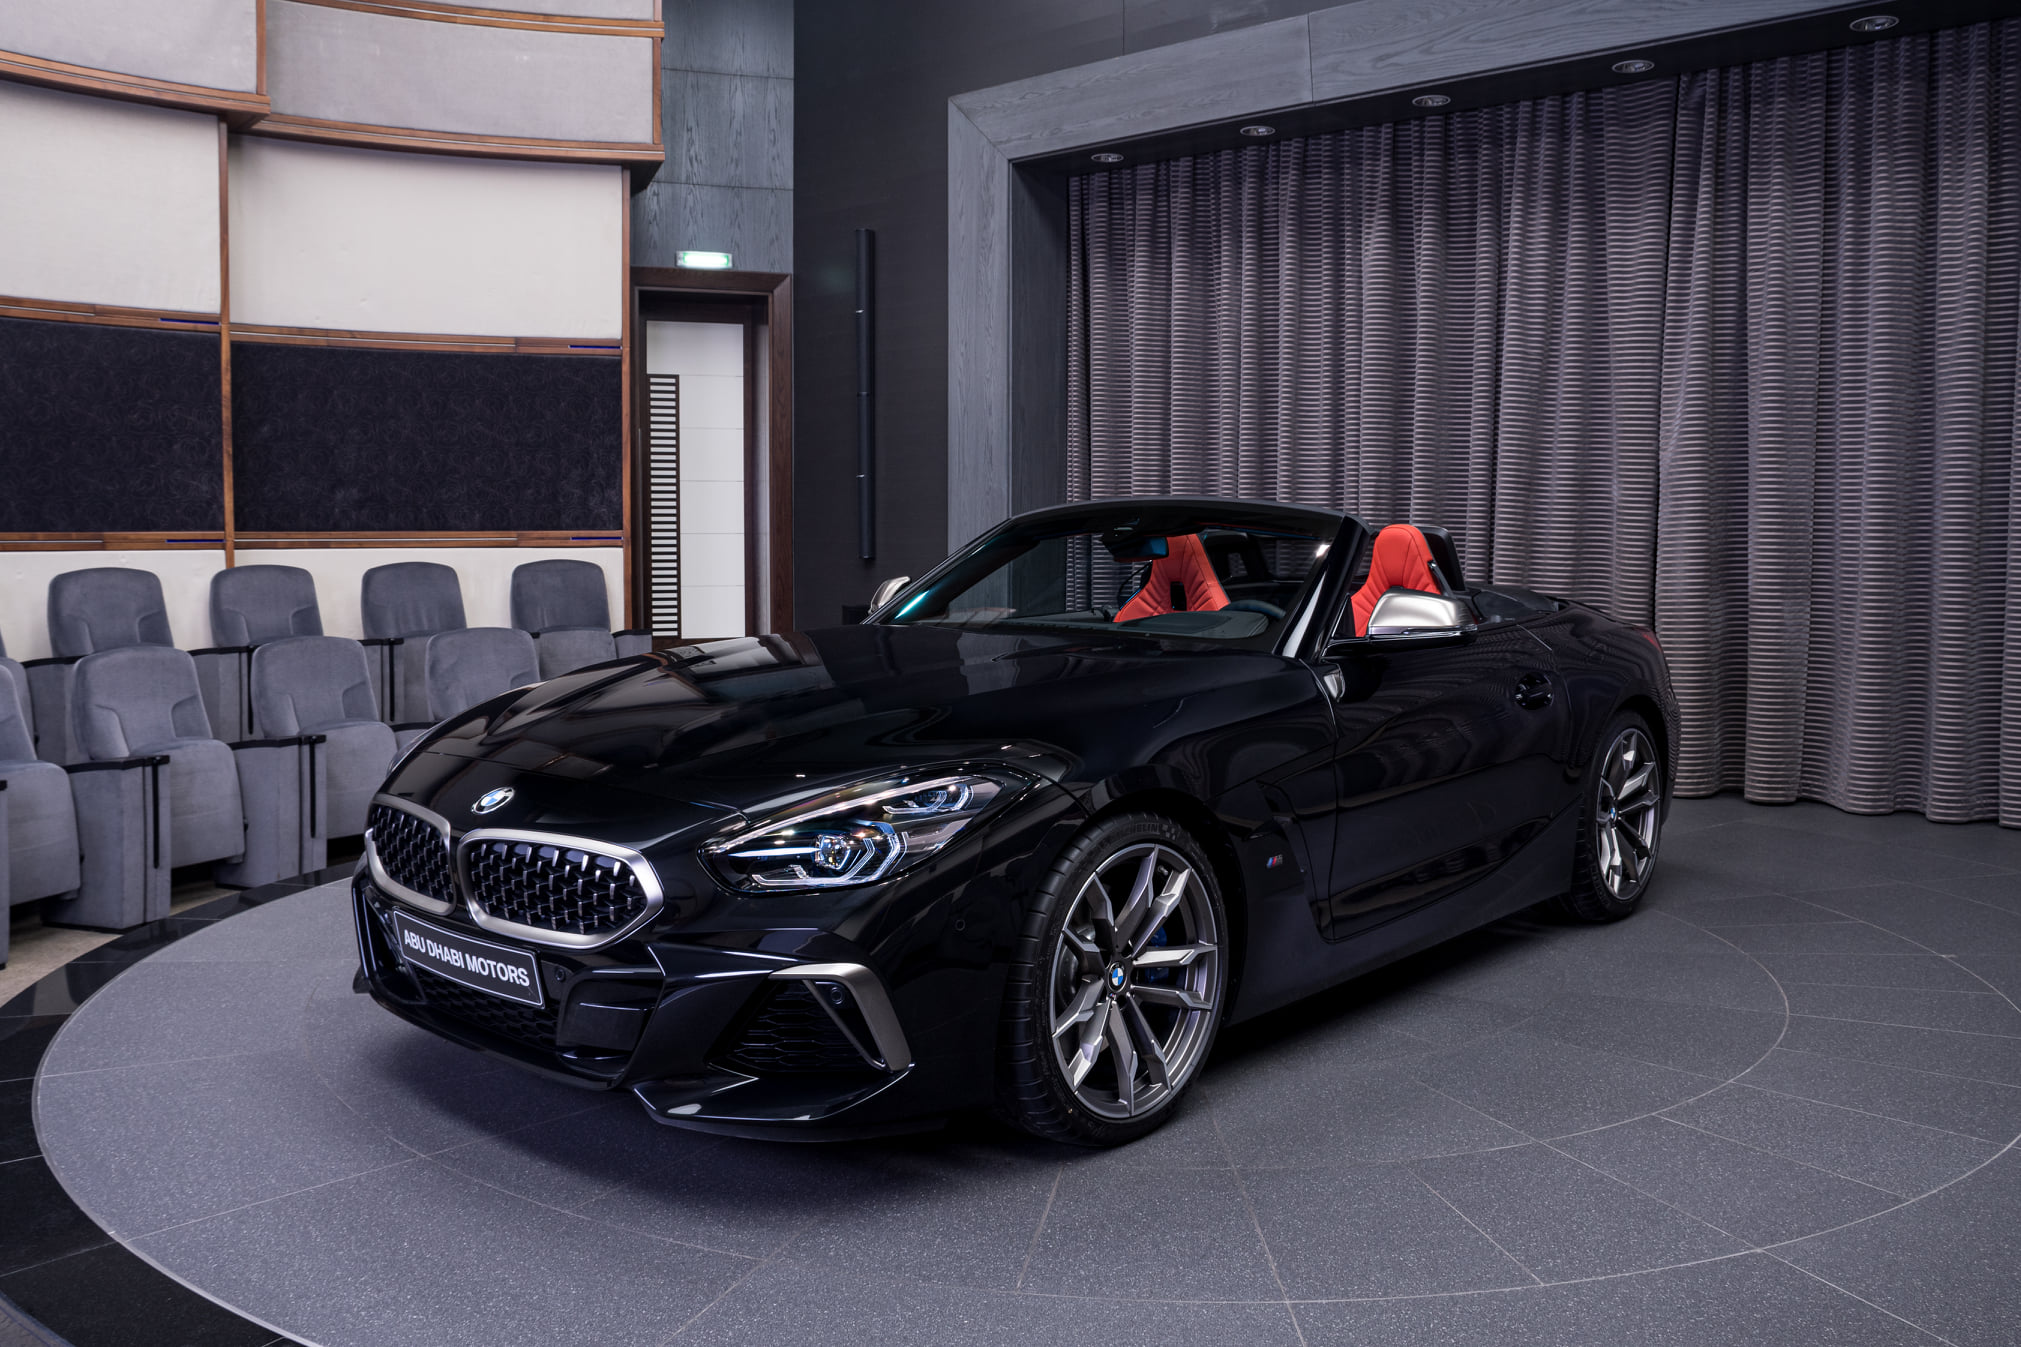 Bmw Z4 M40i Featured In Sapphire Black Metallic With Magma Red Interior